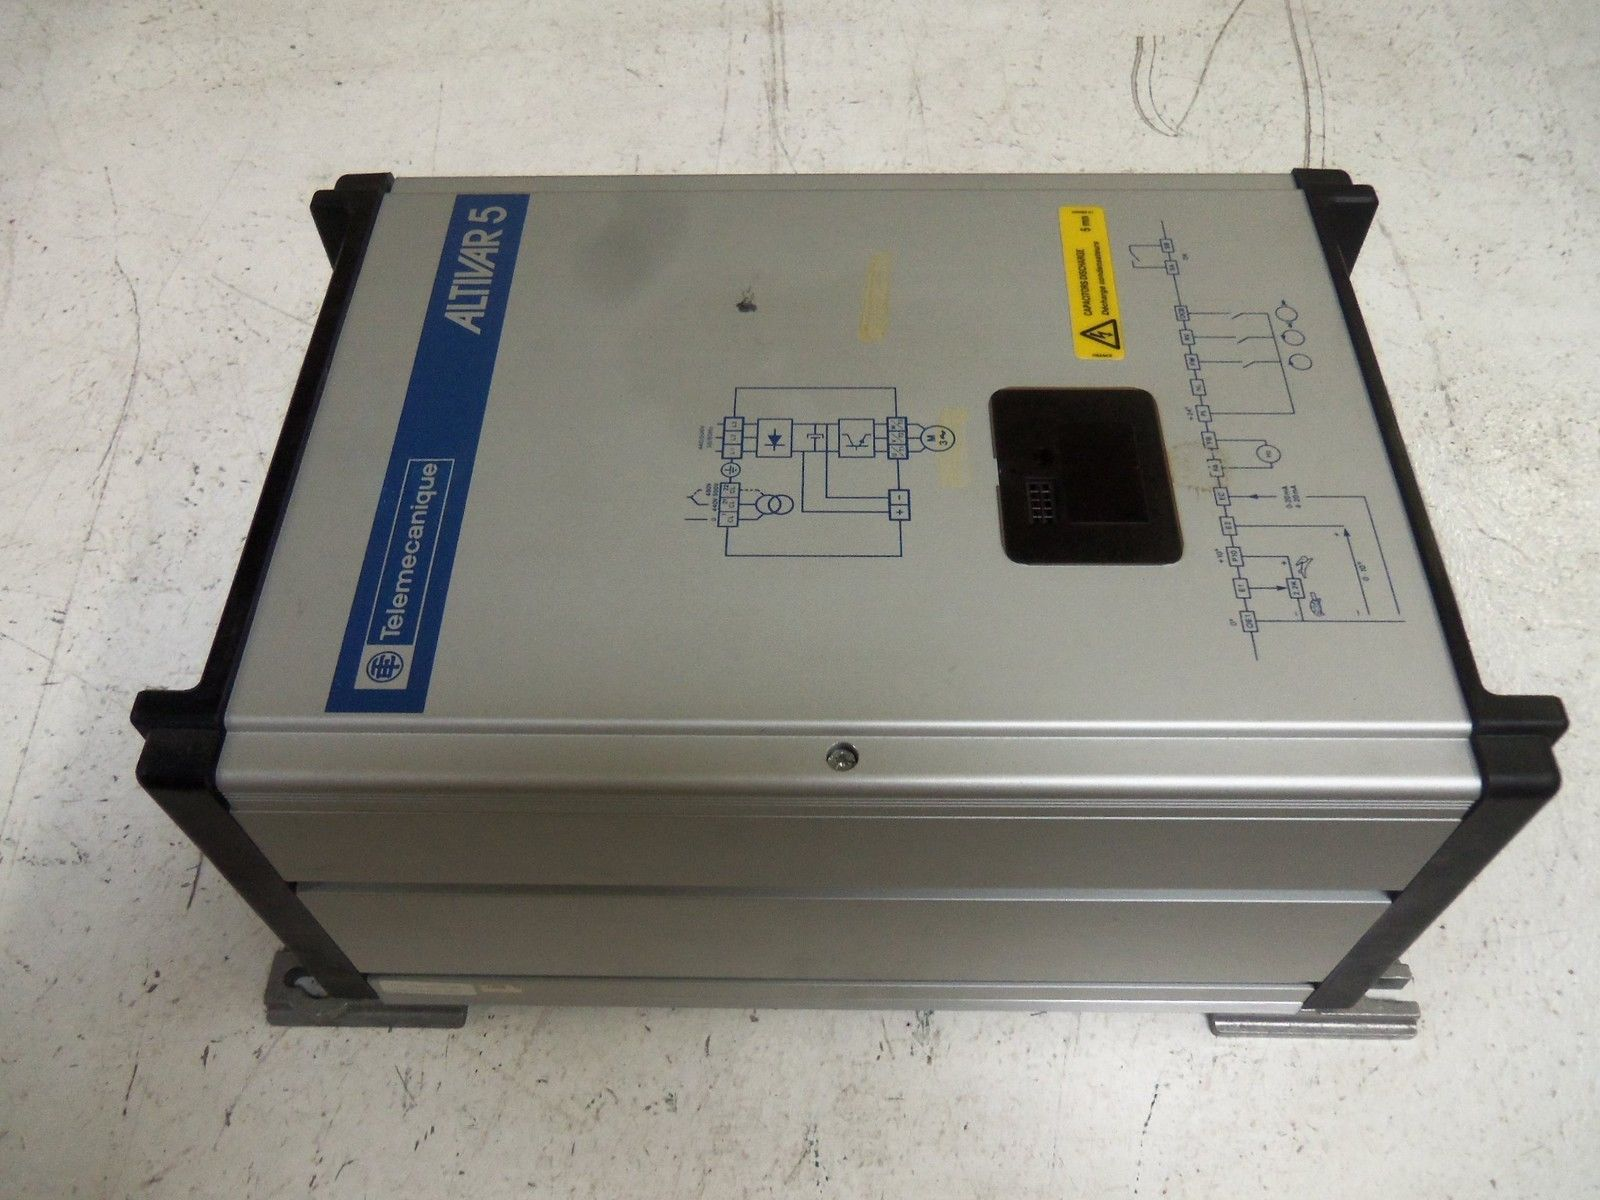 Telemecanique Altivar 5 7.5hp Variable Frequency AC Drive Serie 45 2 ATV452USSN